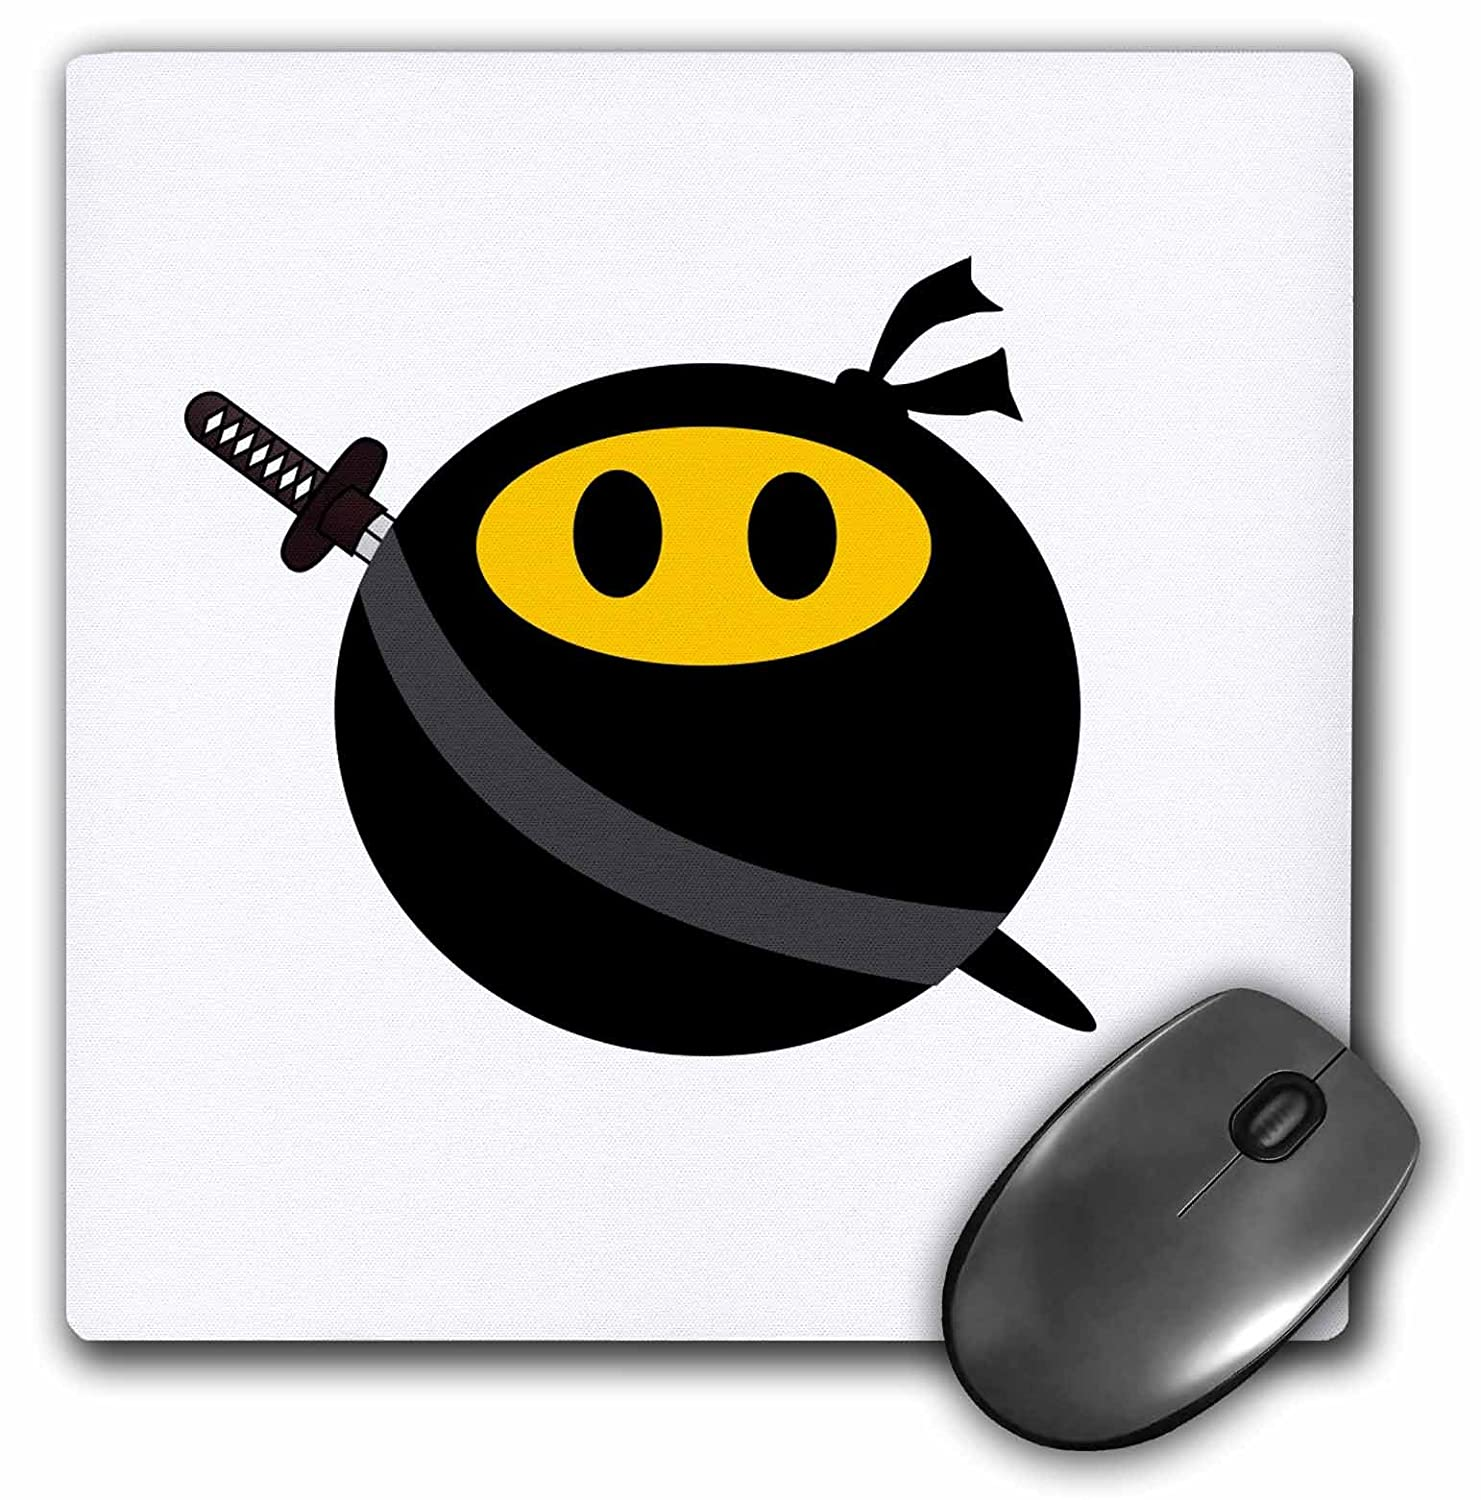 3dRose 8 x 8 x 0.25 Inches Mouse Pad, Ninja Smiley Face (mp_123167_1)